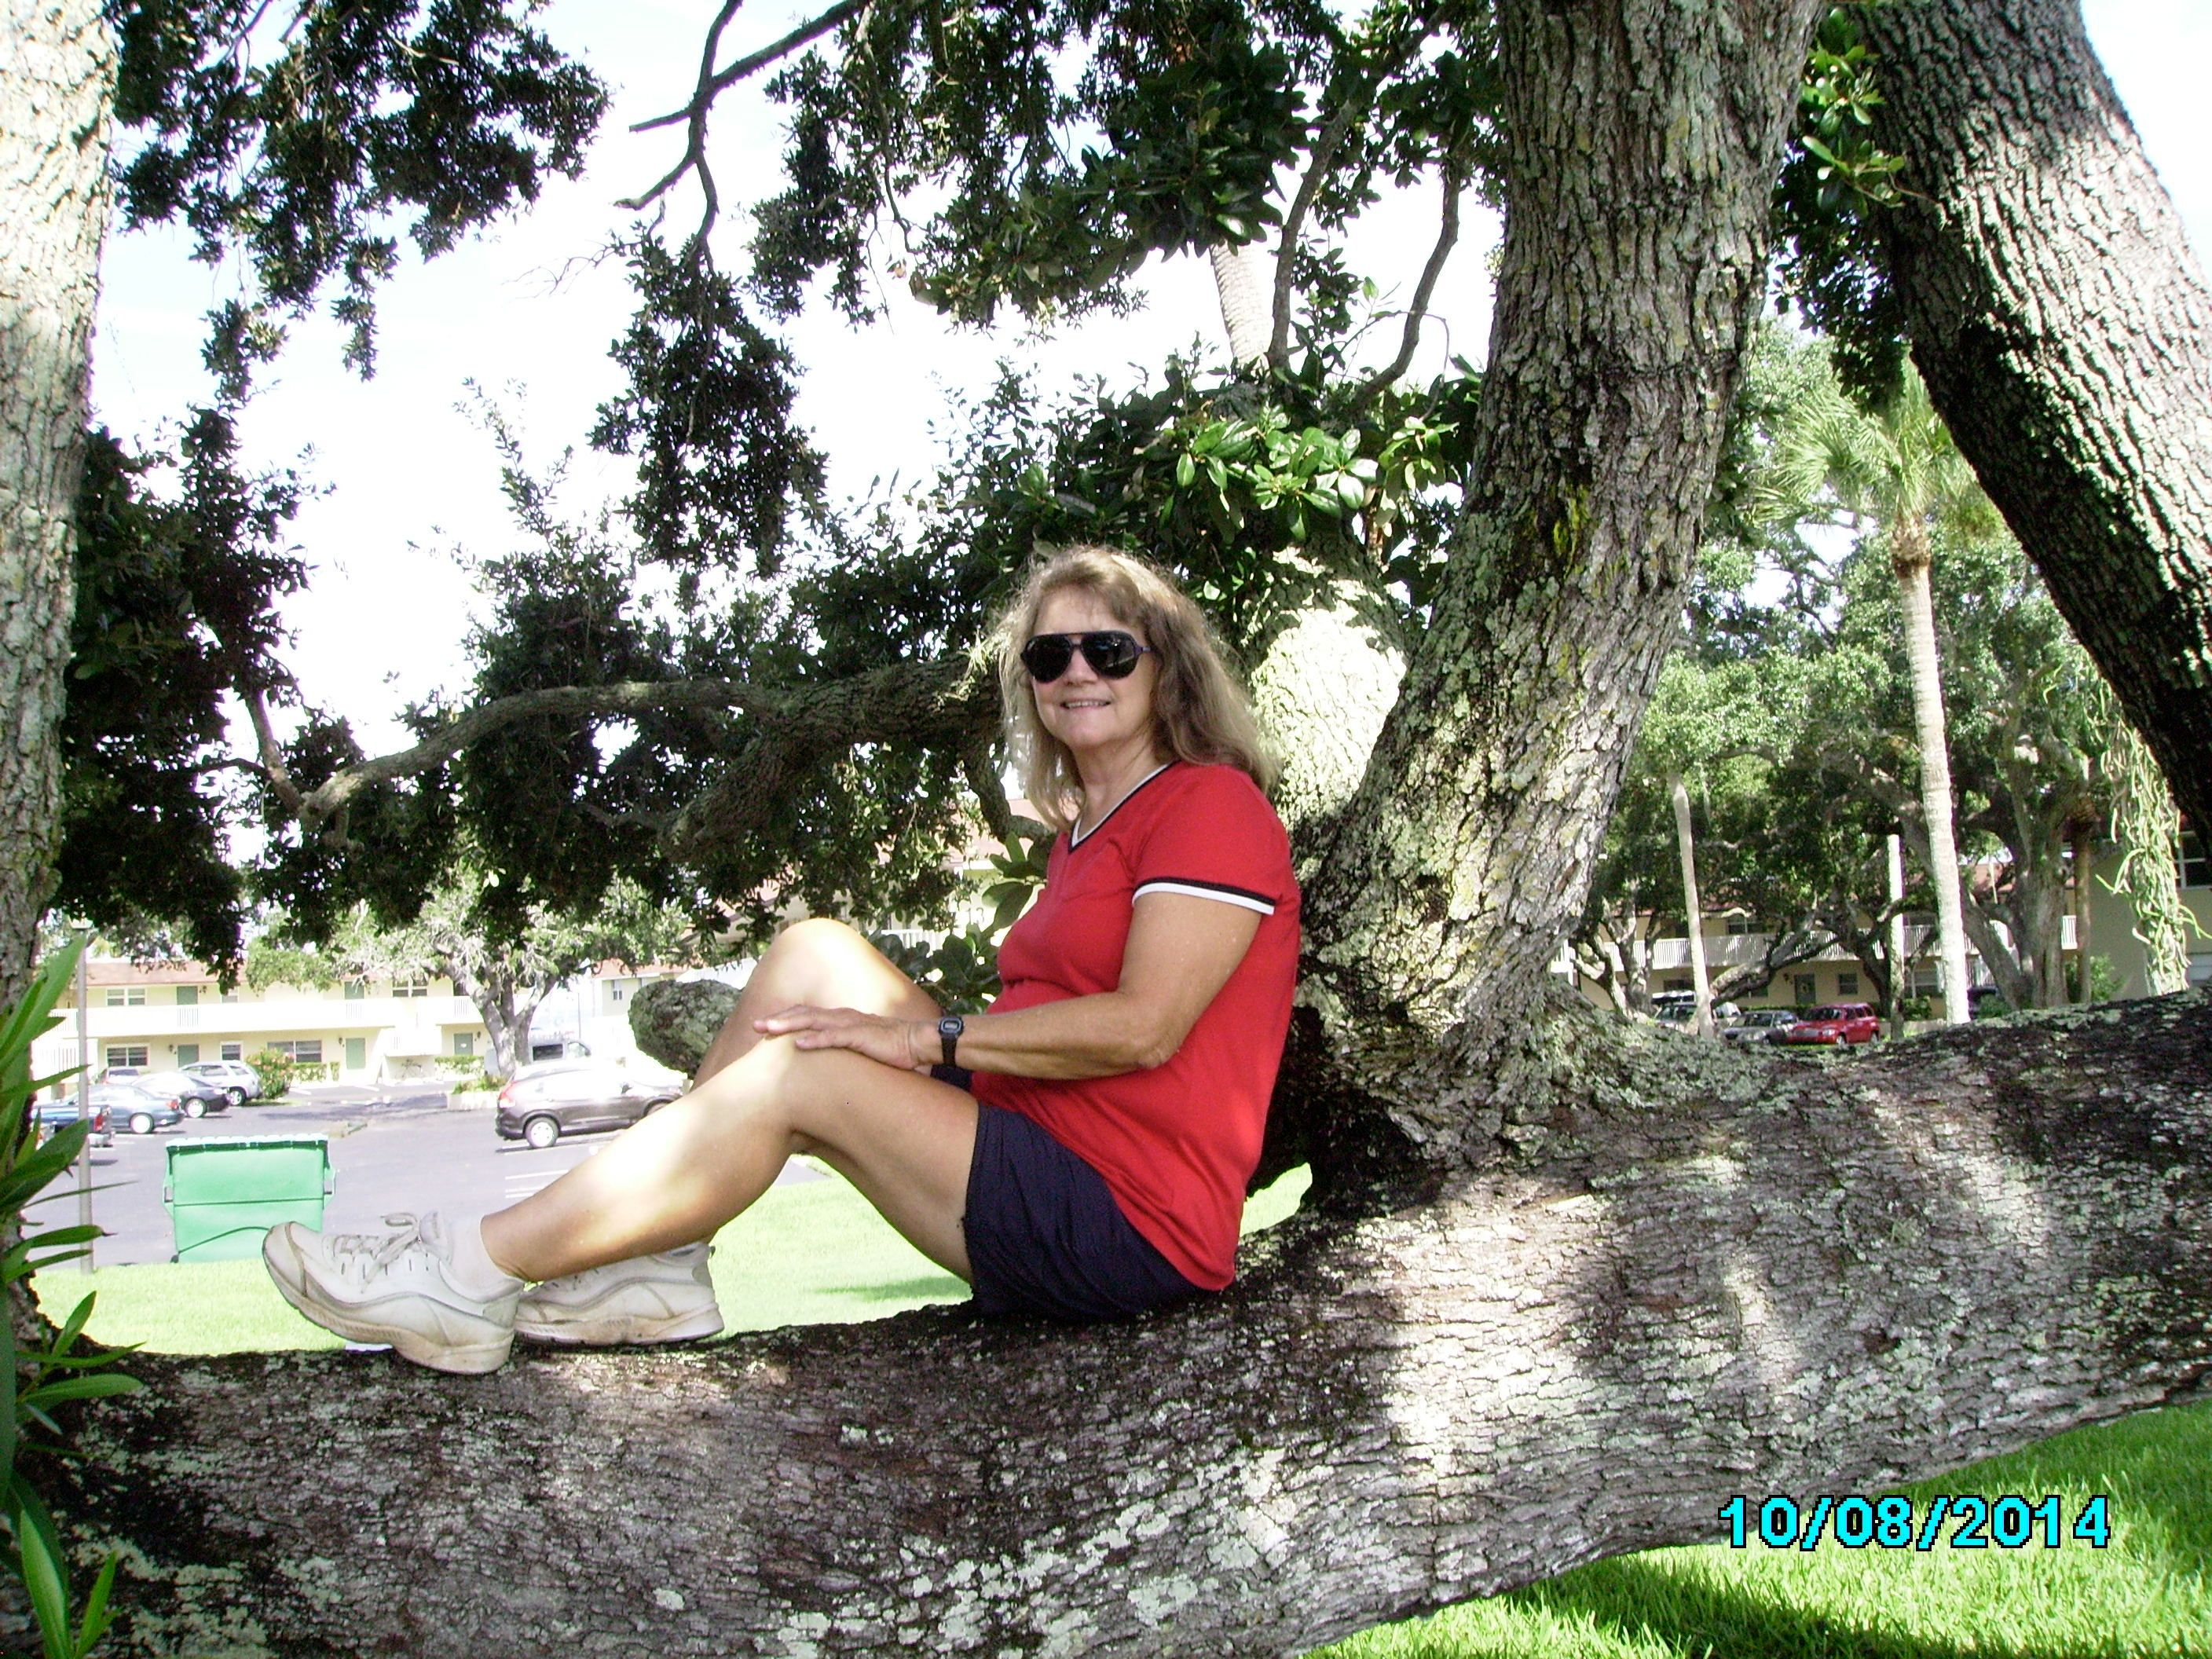 social circle mature singles Mature dating made easy meet singles in your area looking for friendship or love dating site for singles in their 40s, 50s, 60s meet someone special today.